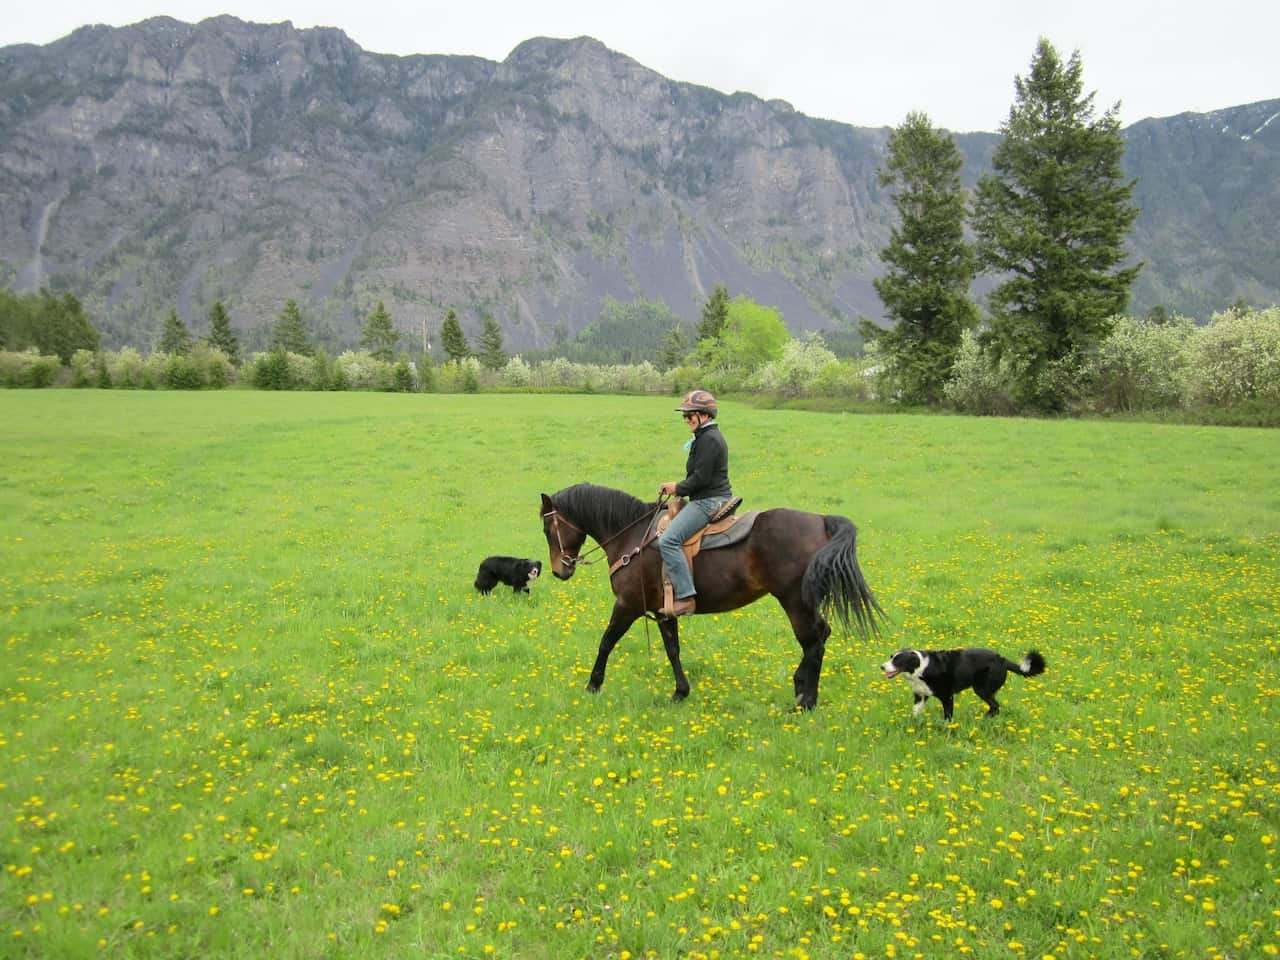 Your dog and livestock - horse rider and 2 dogs in field